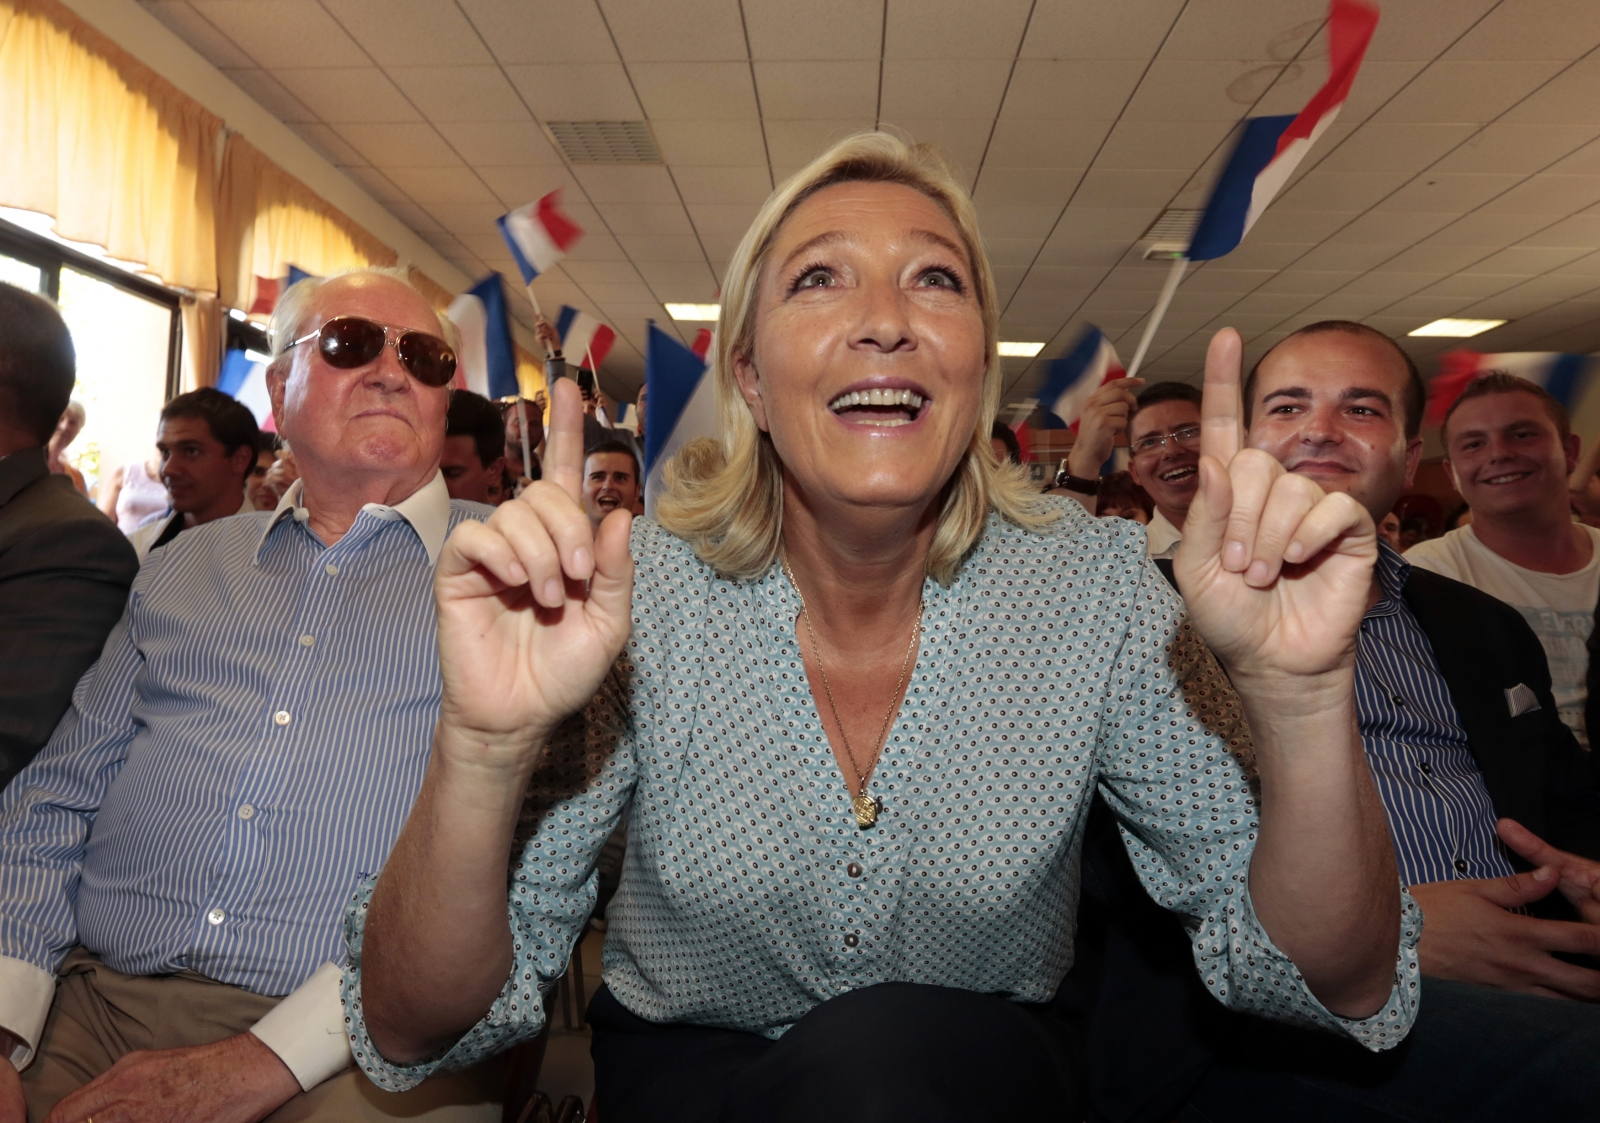 Marine Le Pen, France's National Front political party leader (C)